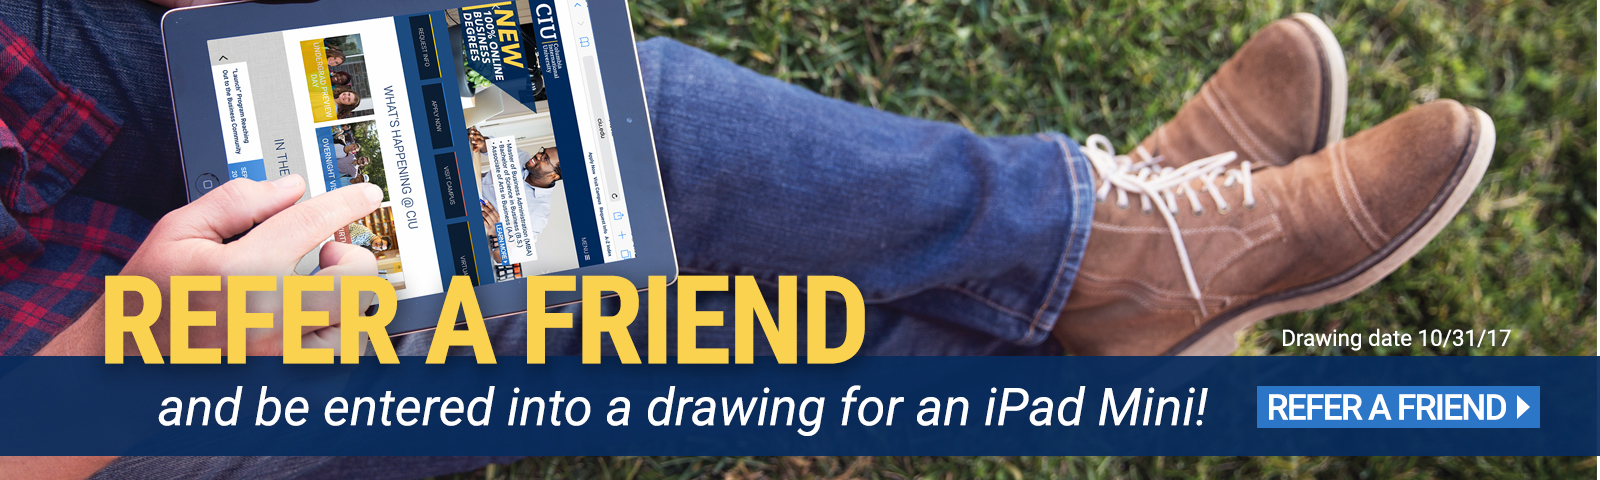 Refer a friend to CIU.